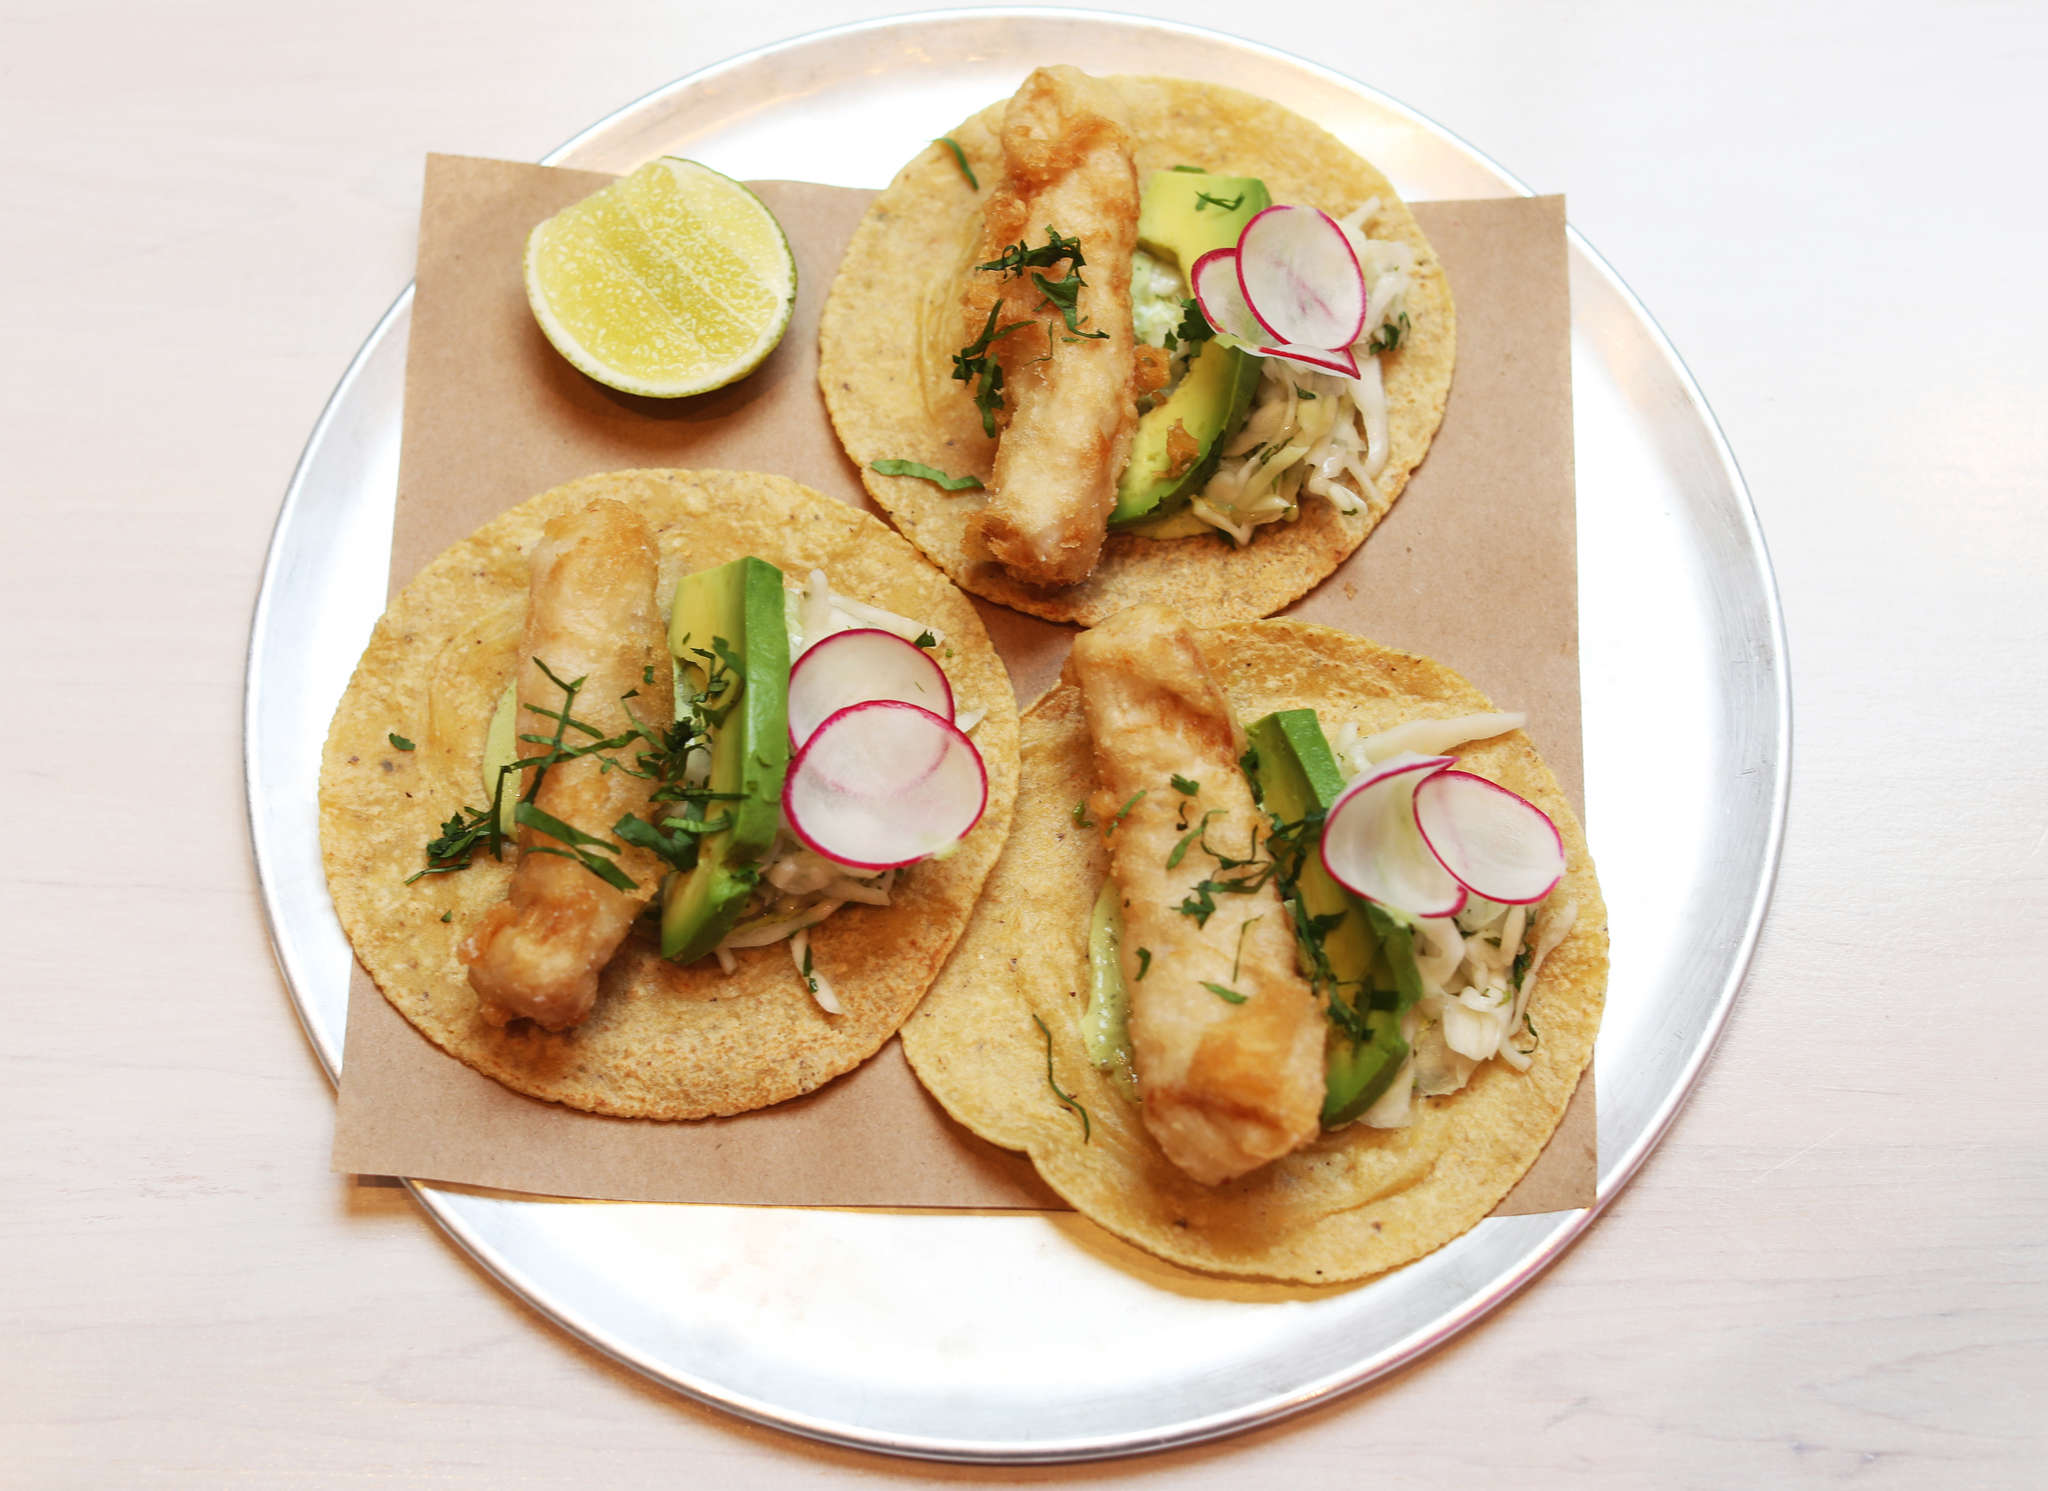 The mahi mahi tacos at Mission Taqueria have thick-cut bars of fish crisped inside a delicate rice flour batter.